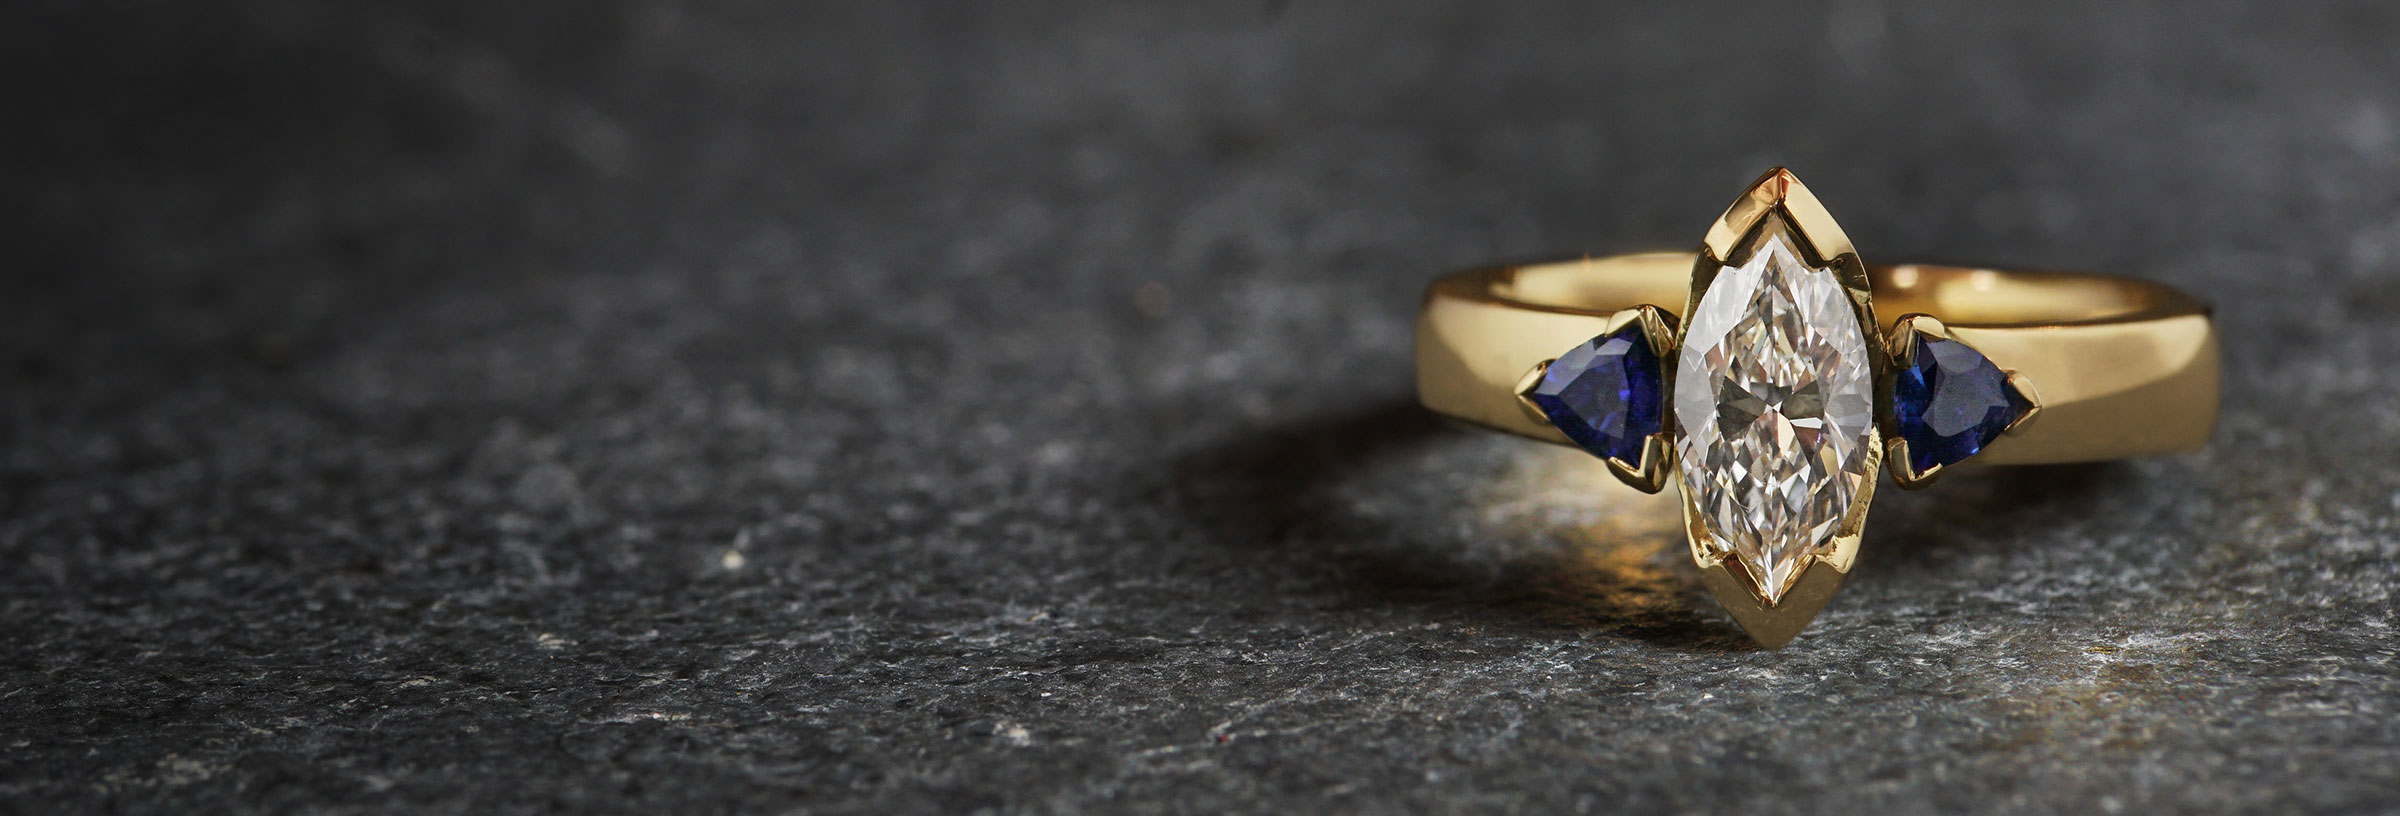 yellow-gold-marquise-diamond-and-trilliant-sapphire-trilogy-engagement-ring